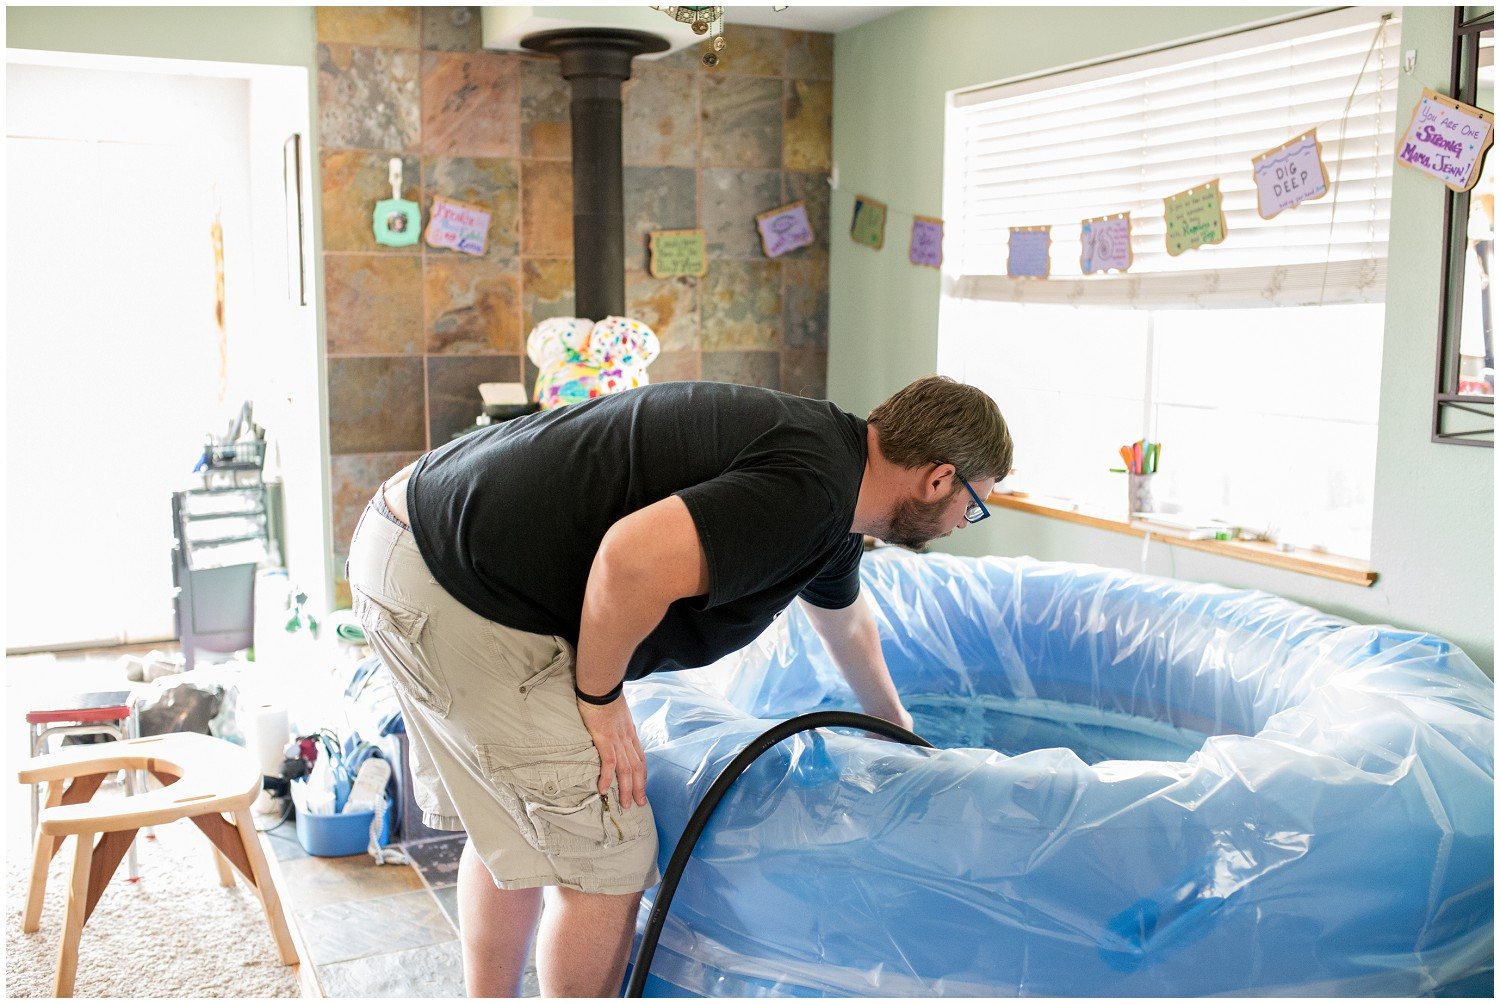 Home birth tub gets filled as photographer documents her journey in Denver